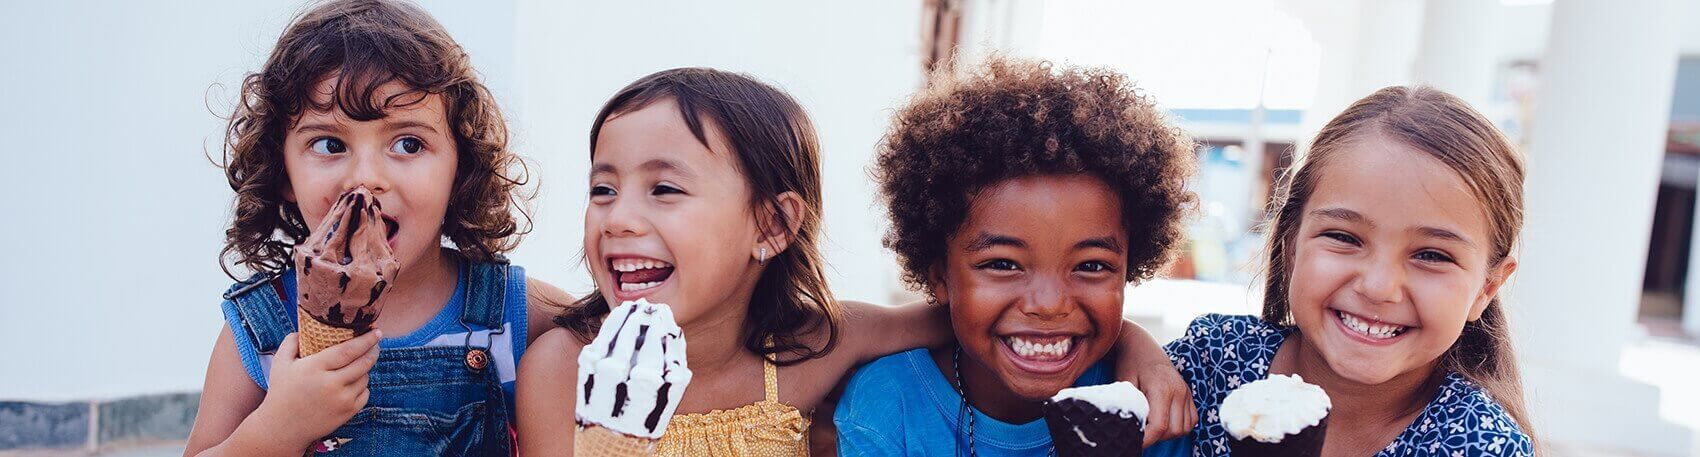 group of children eating ice cream together